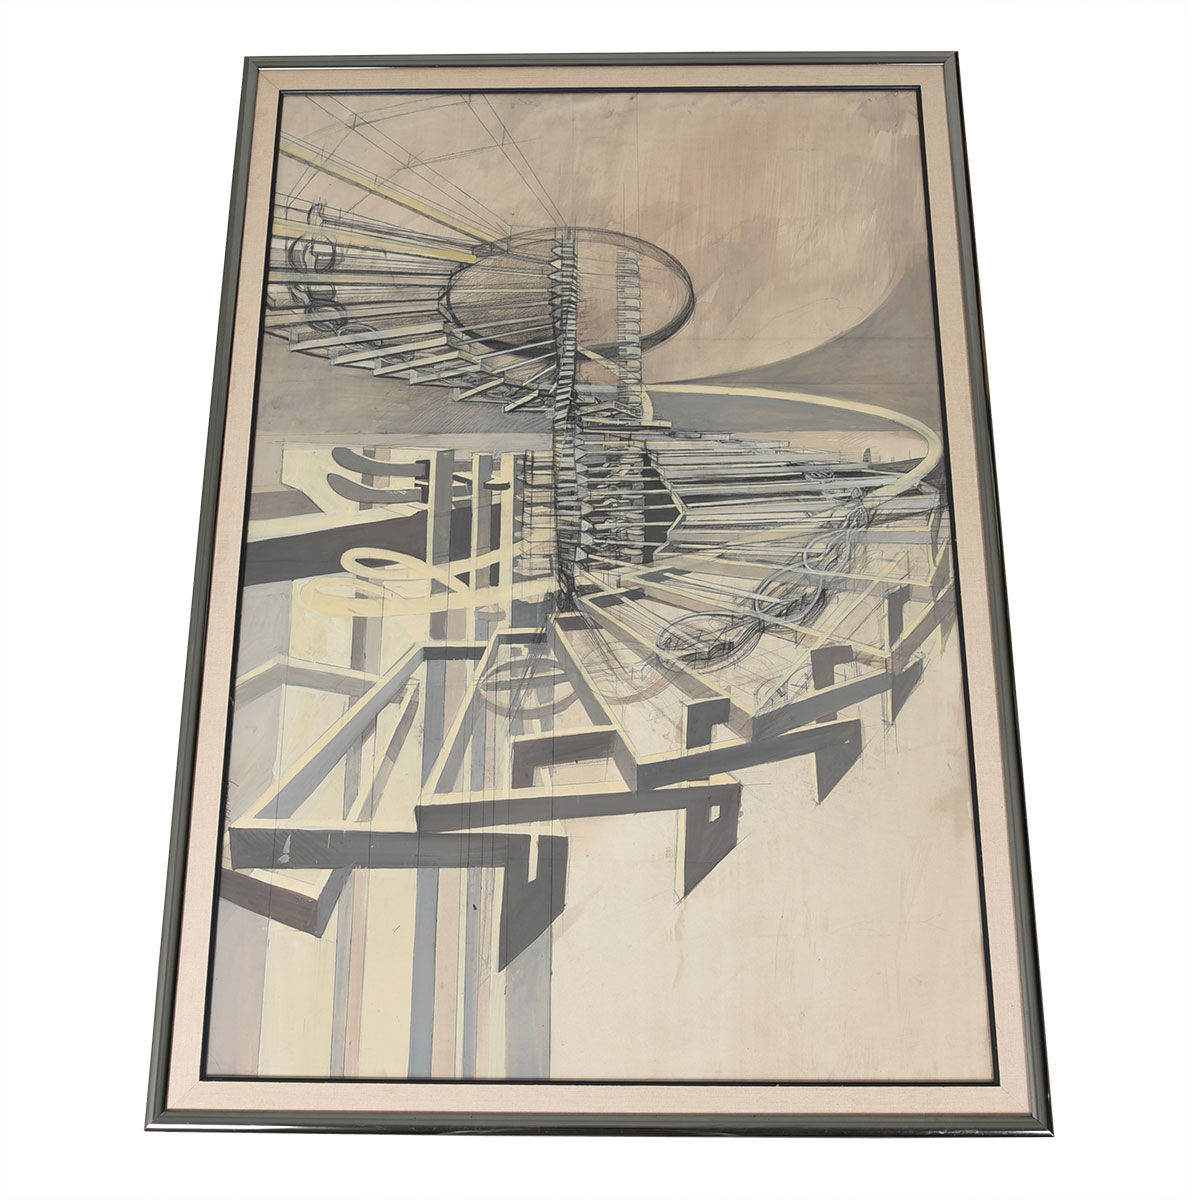 Extraordinary Pencil & Watercolor Sketch of Surrealist Industrial Machinery